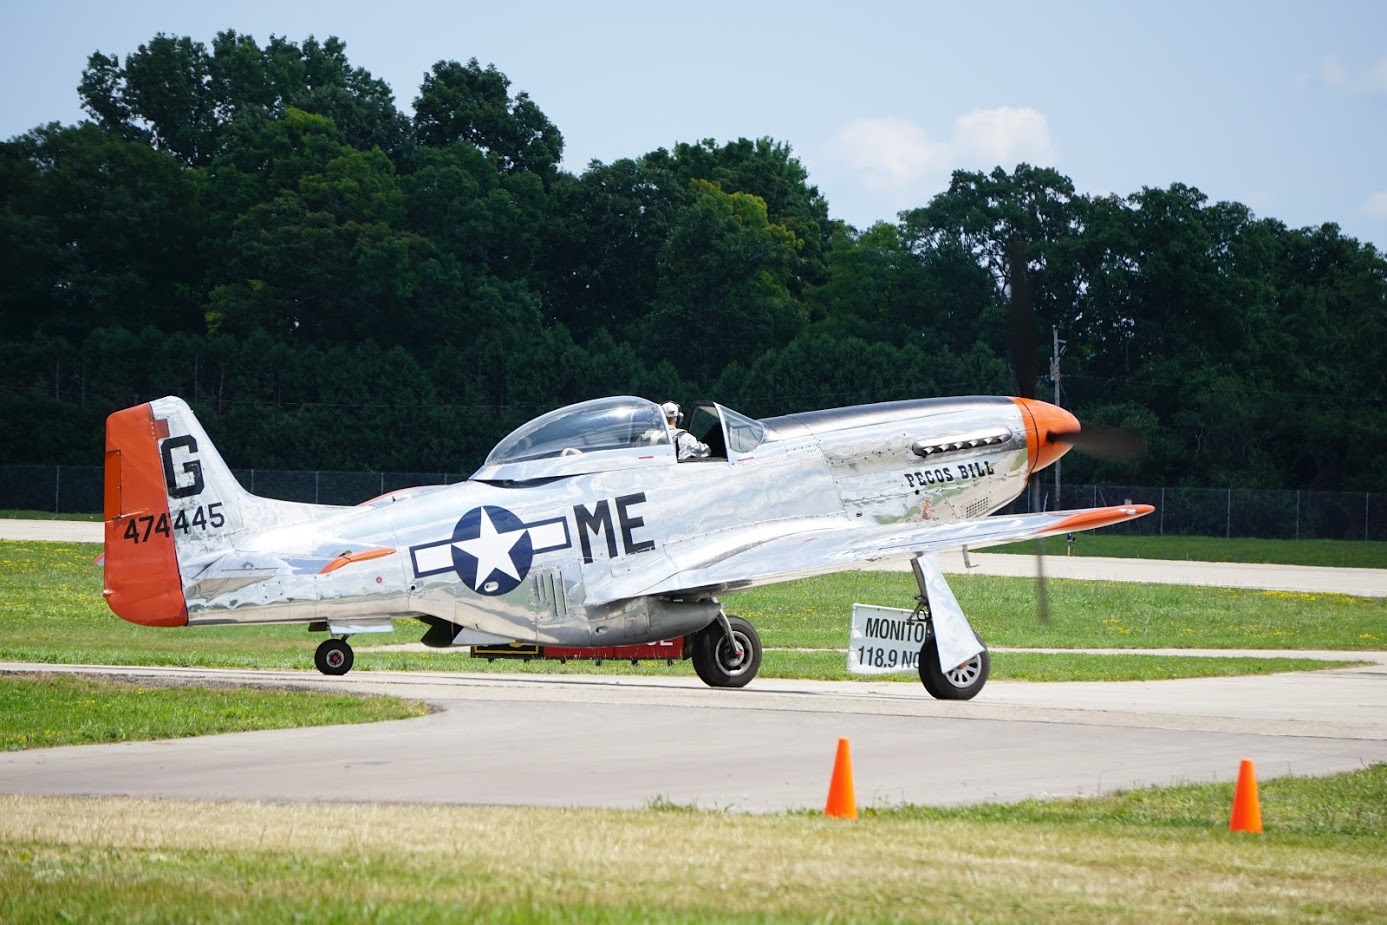 My own pic of Pecos Bill prepping for a flight at Oshkosh last summer.